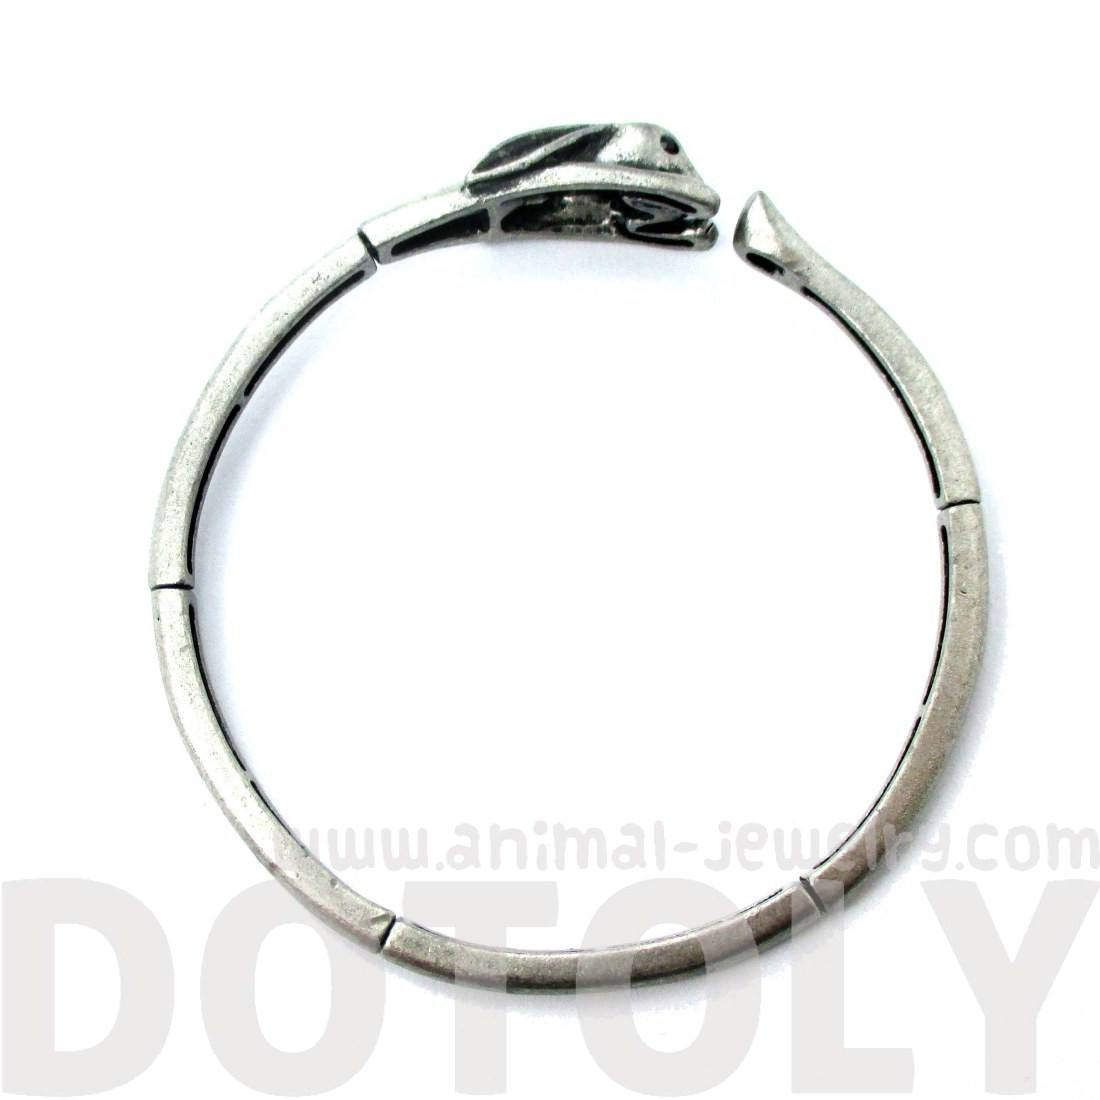 Bunny Rabbit Wrapped Around Your Wrist Shaped Silver Bangle Bracelet